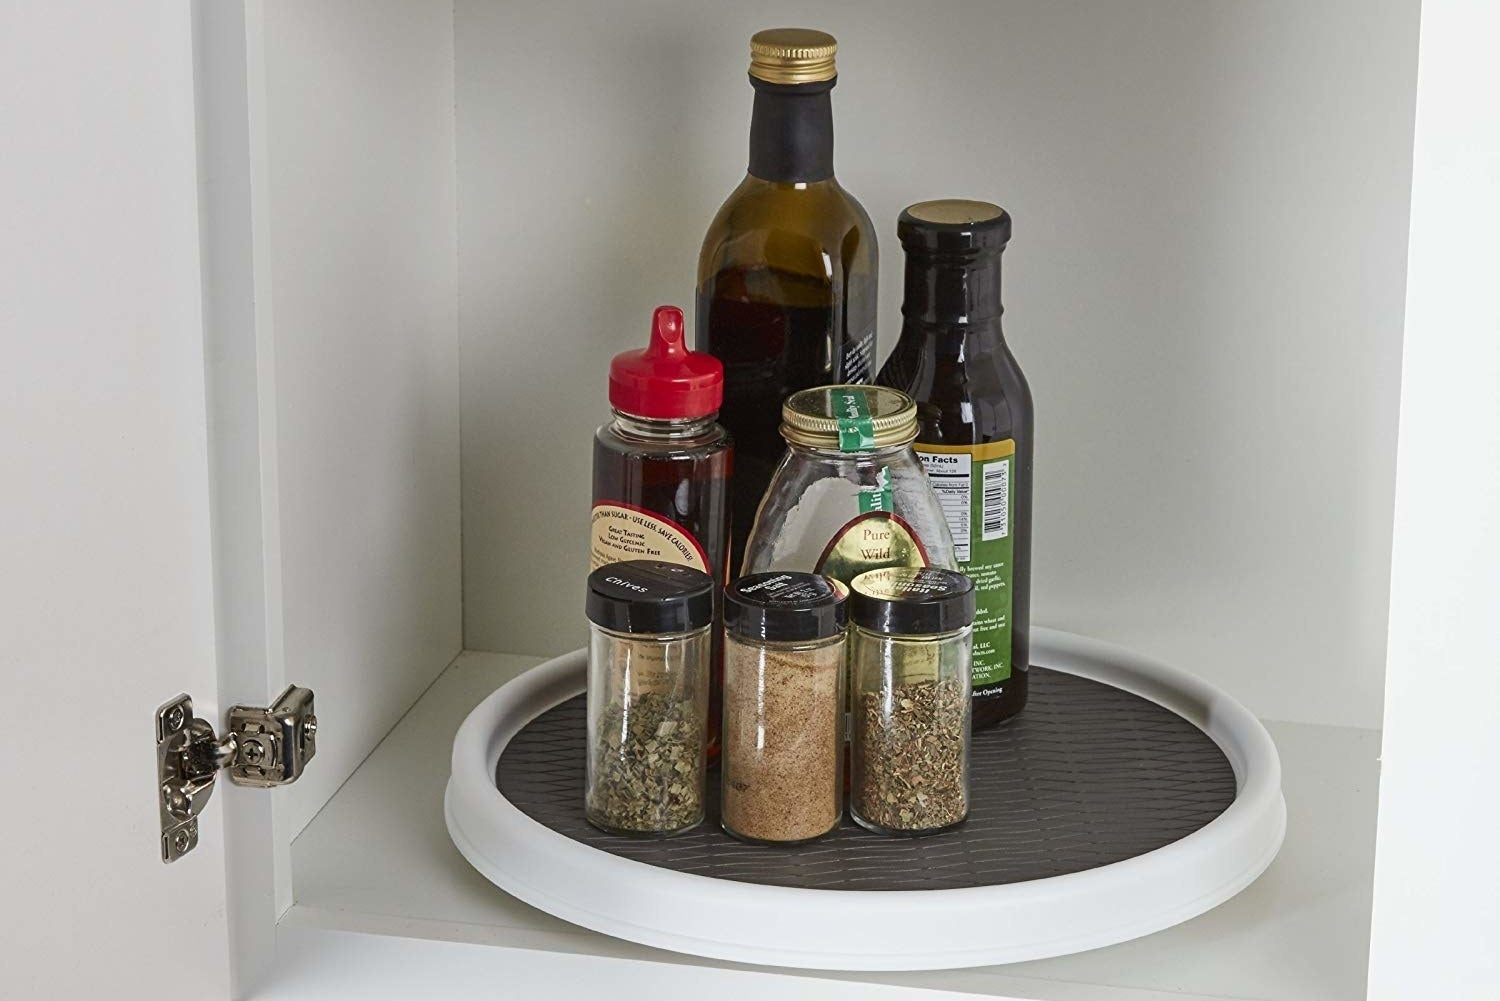 the lazy susan in cabinet with spices and condiments on it